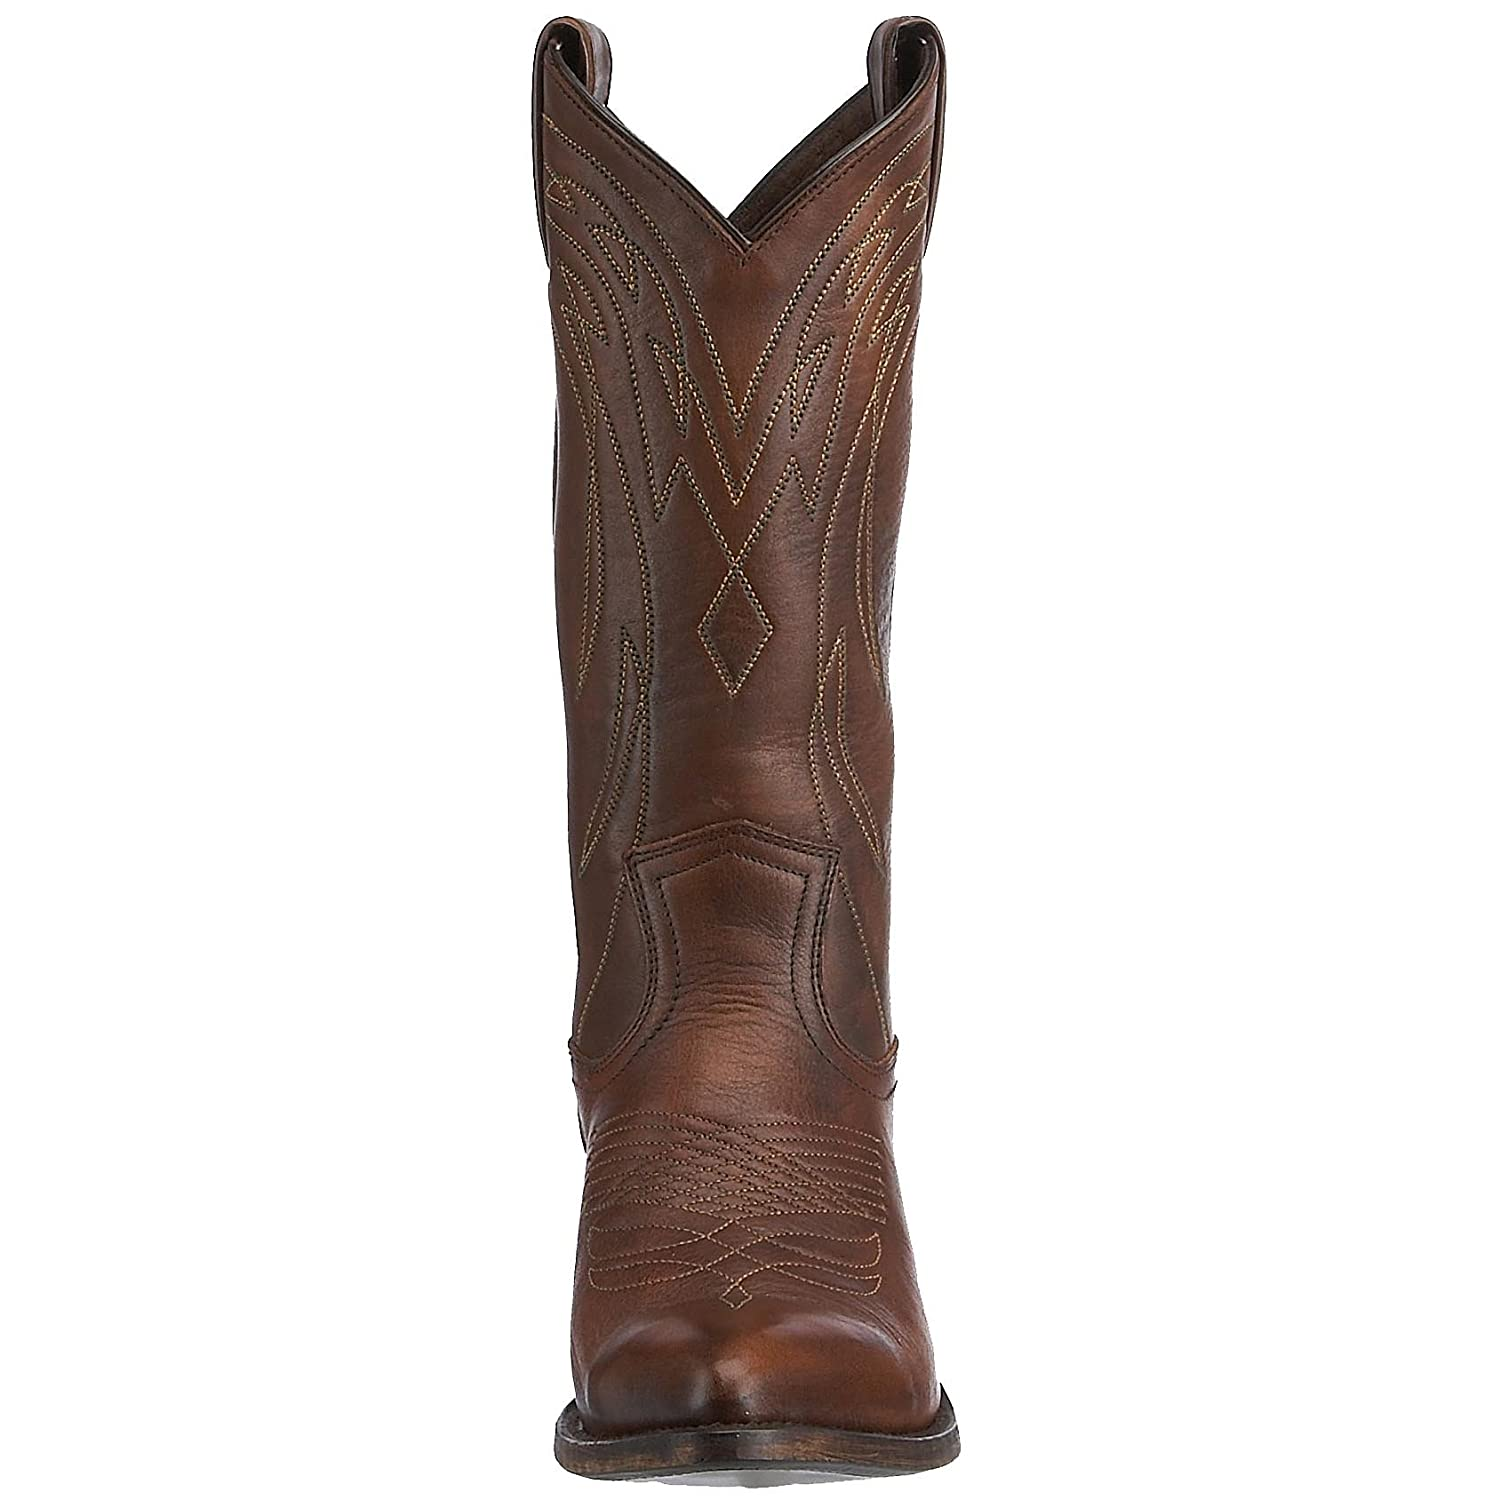 FRYE Women's Billy Pull-On Boot B001BK4OUU 6.5 B(M) US|Dark Brown Vintage Calf Shine-77689